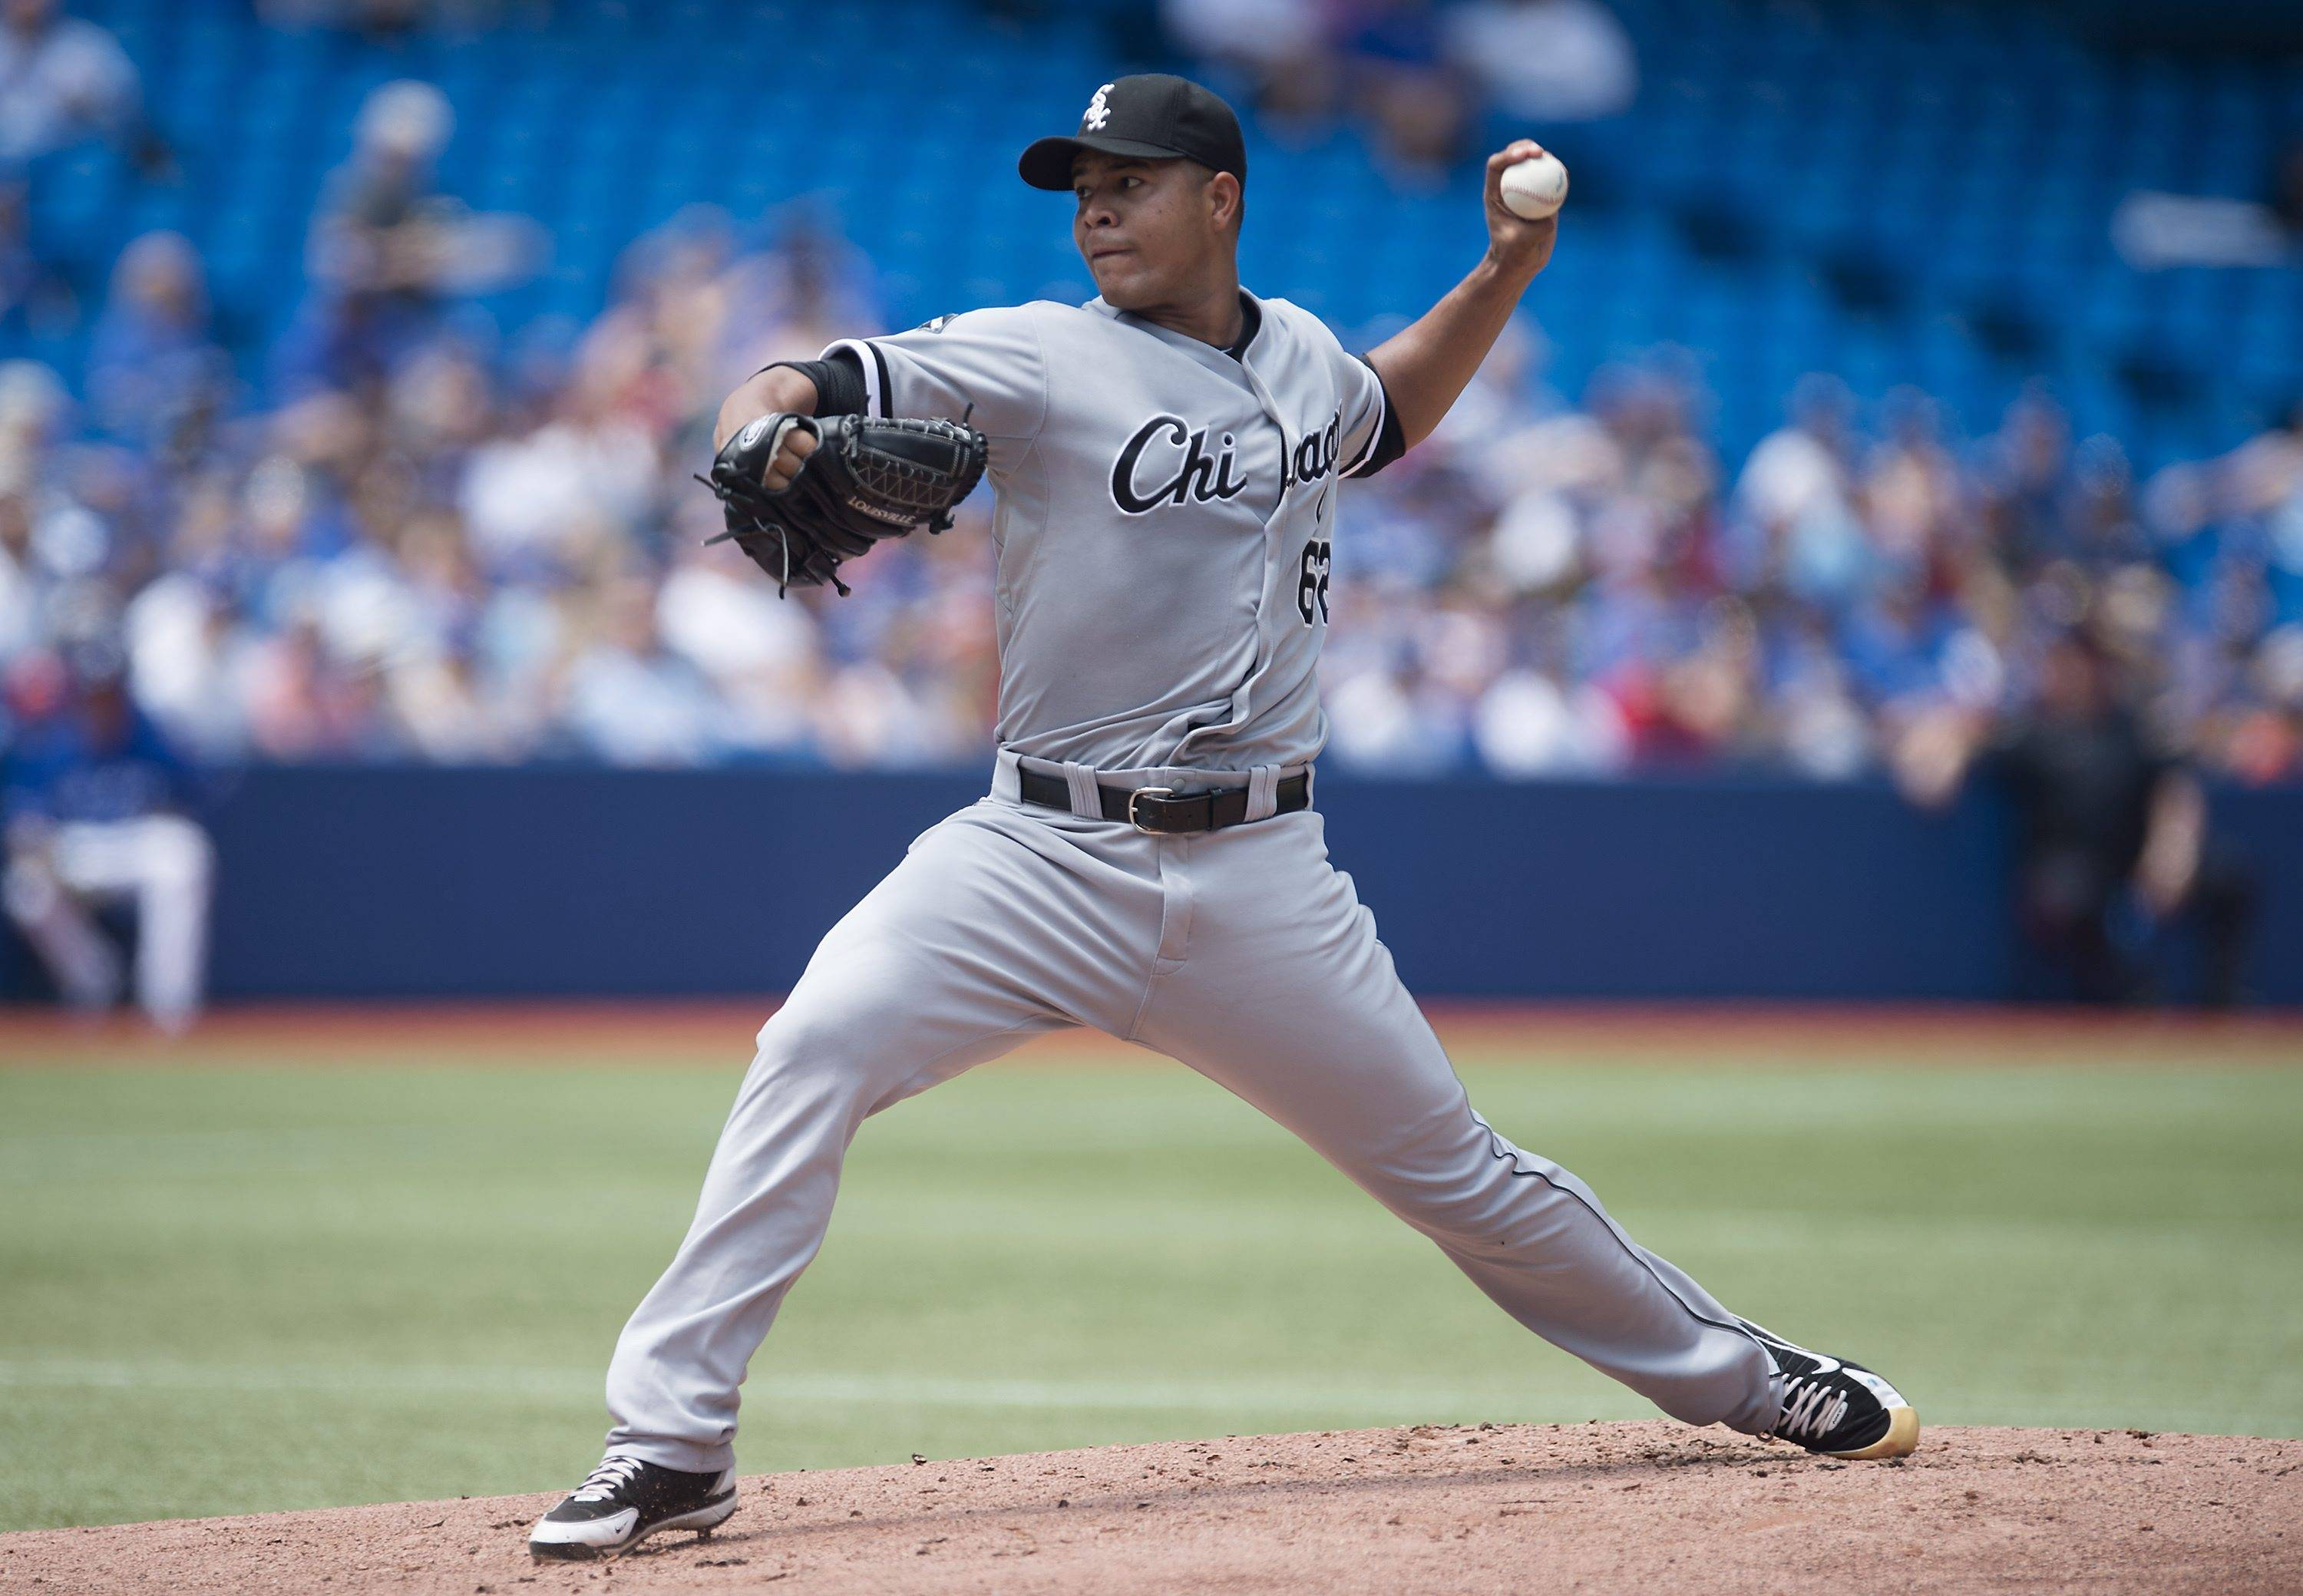 Chicago White Sox starting pitcher Jose Quintana works against the Toronto Blue Jays during the first inning of a baseball game in Toronto on Sunday, June 29, 2014.